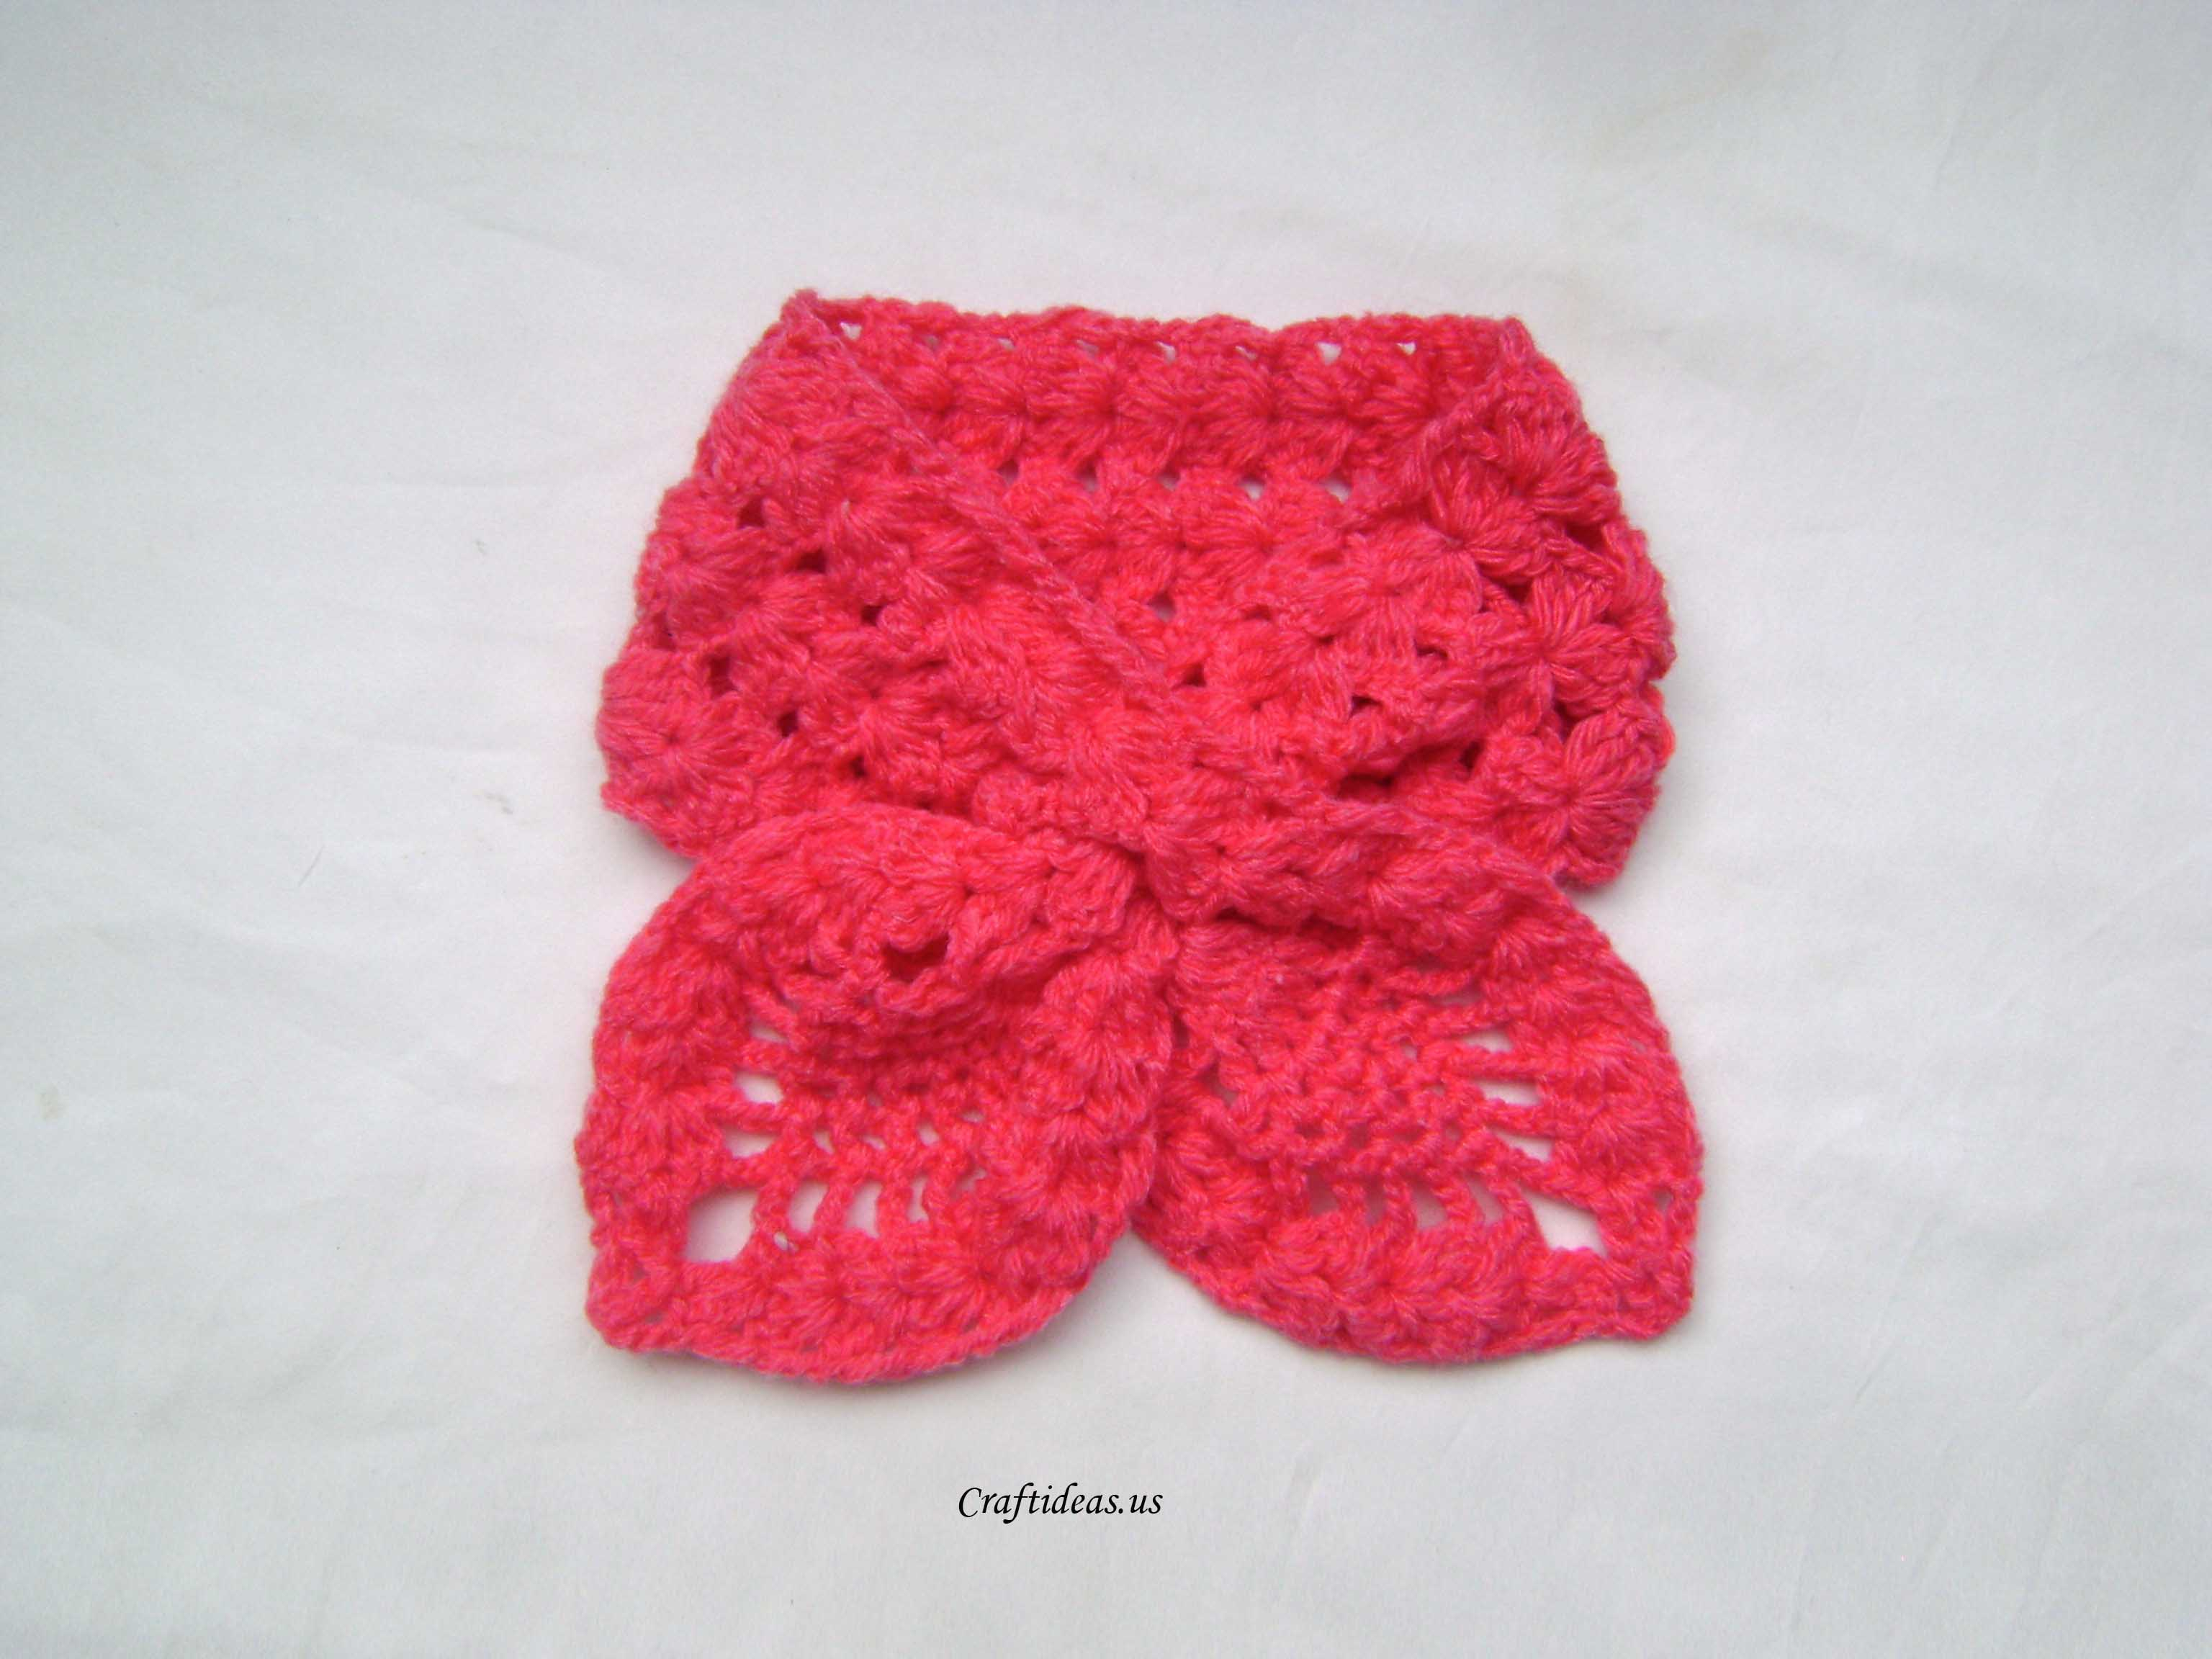 Crochet Tutorial : Crochet lotus scarf tutorial - Craft Ideas